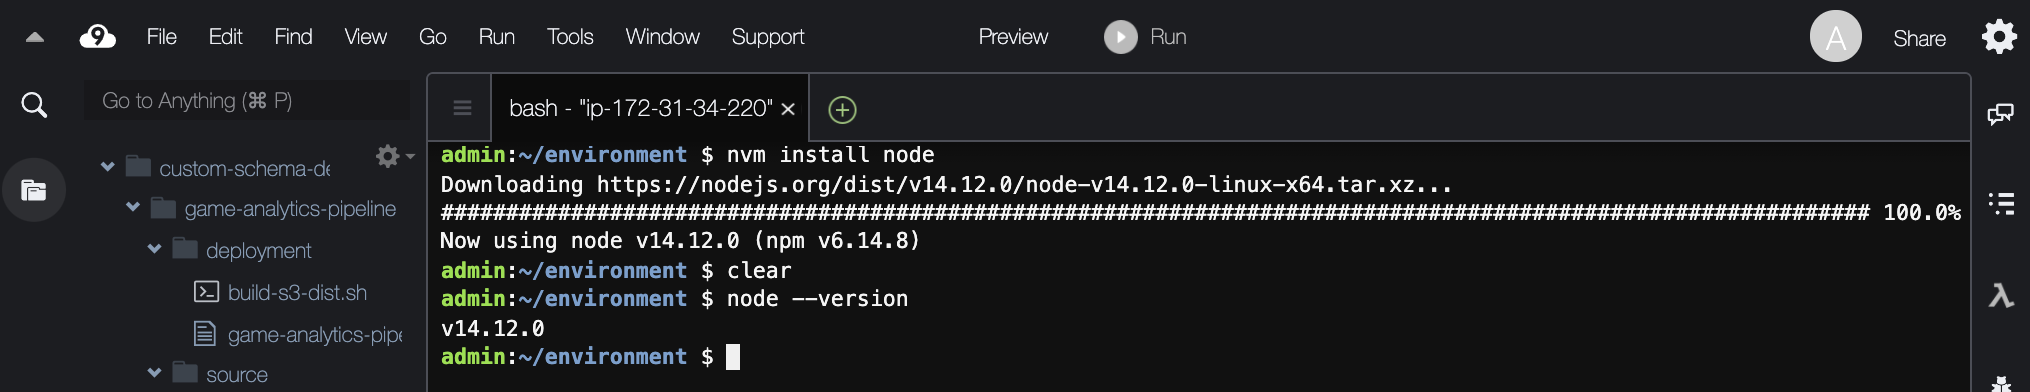 "Results of installing the latest version of Node using ""nvm install node"" and checking the version with node --version."